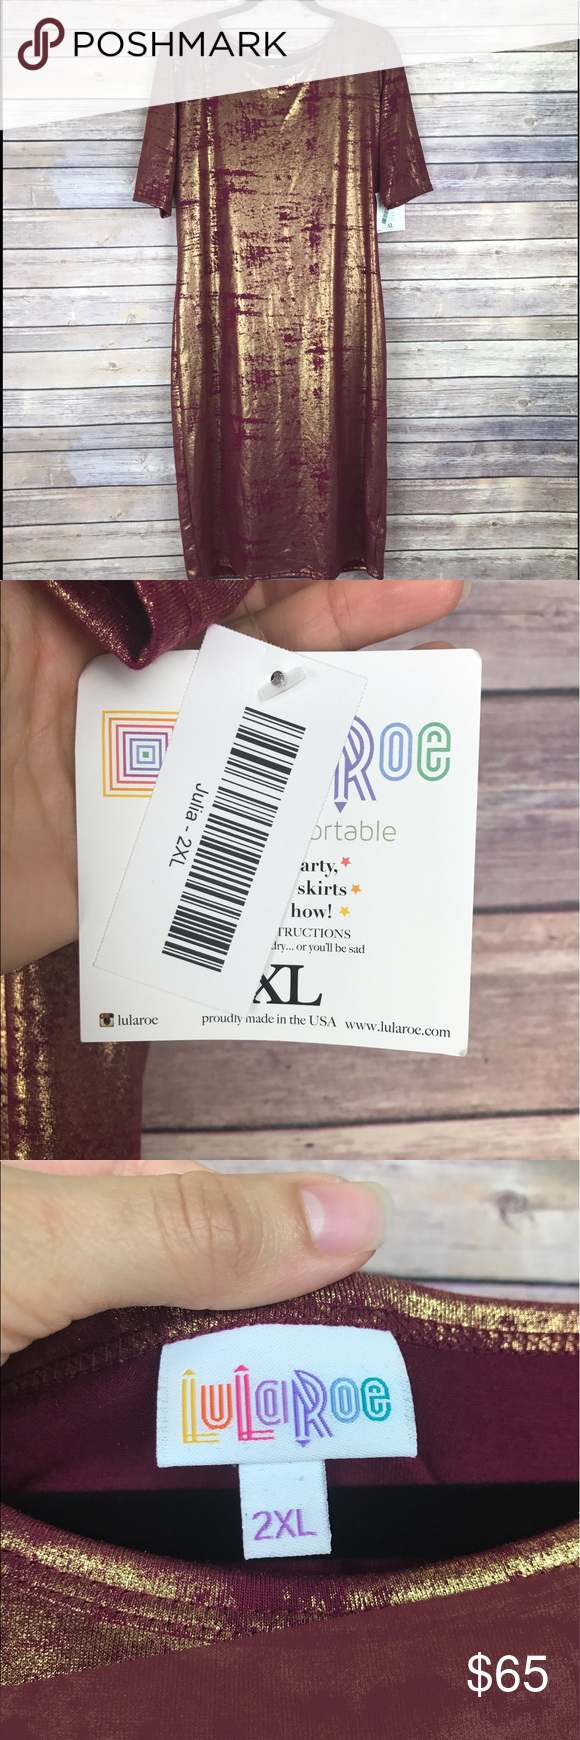 """Lularoe Julia Dress Metallic Elegance Unicorn Lularoe 'Julia' dress from the limited edition elegance collection Purplish red color with metallic gold print Size 2XL. Armpit to armpit 21"""" Length 43"""" New with tags! All measurements are approximate. Smoke free home. LuLaRoe Dresses"""